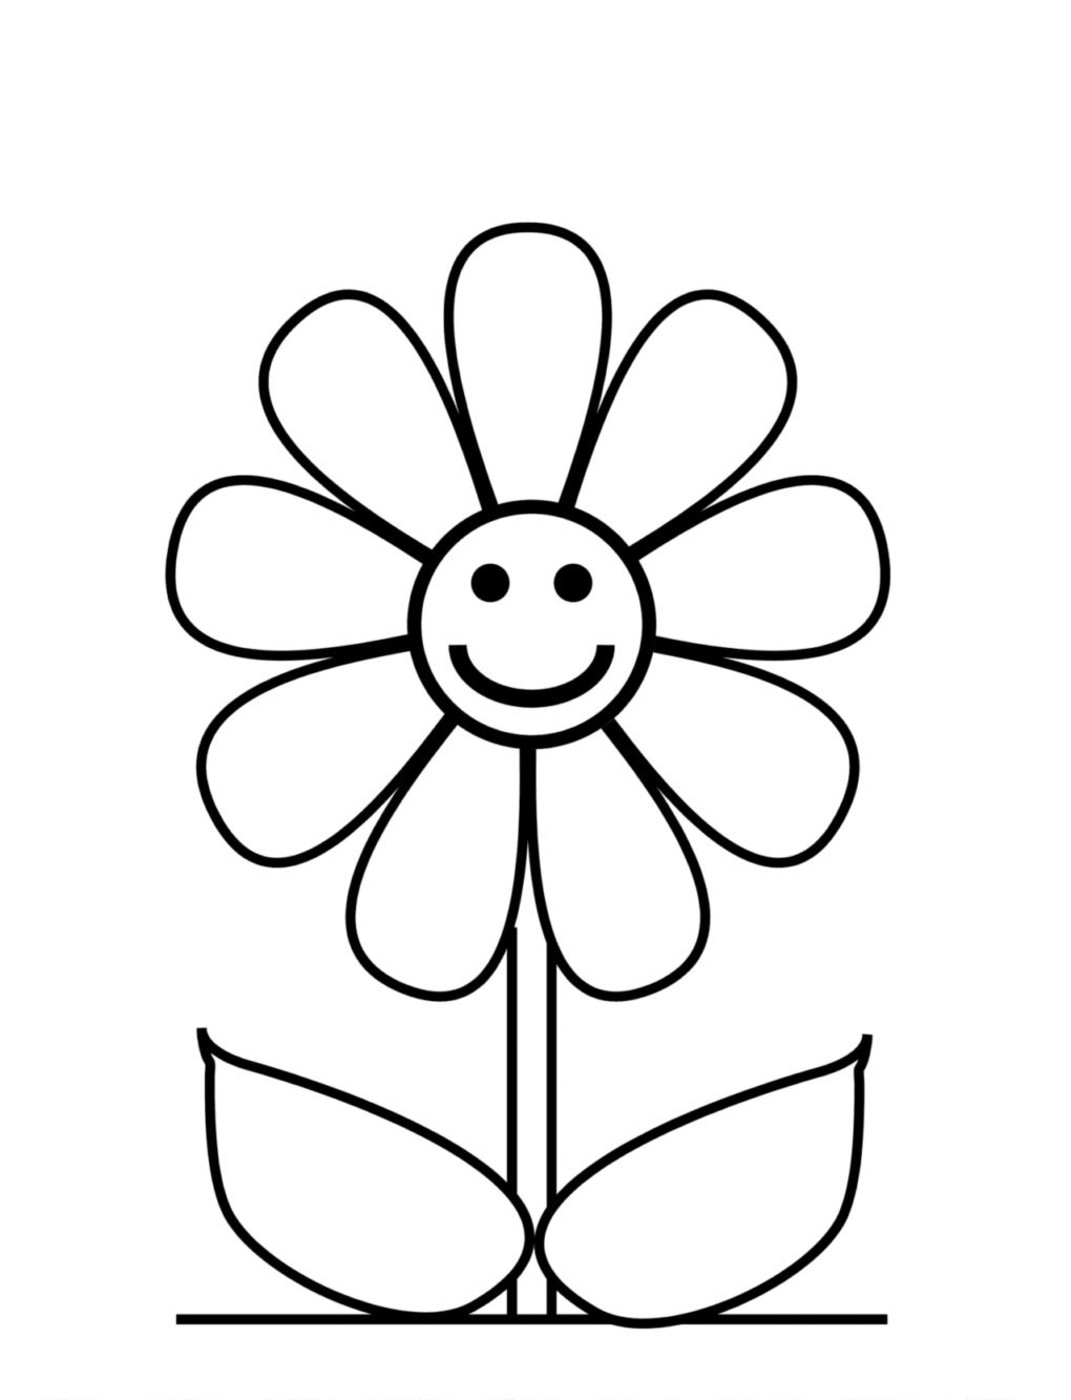 orchid coloring pages the coloring page will print without ads navigation pages orchid coloring